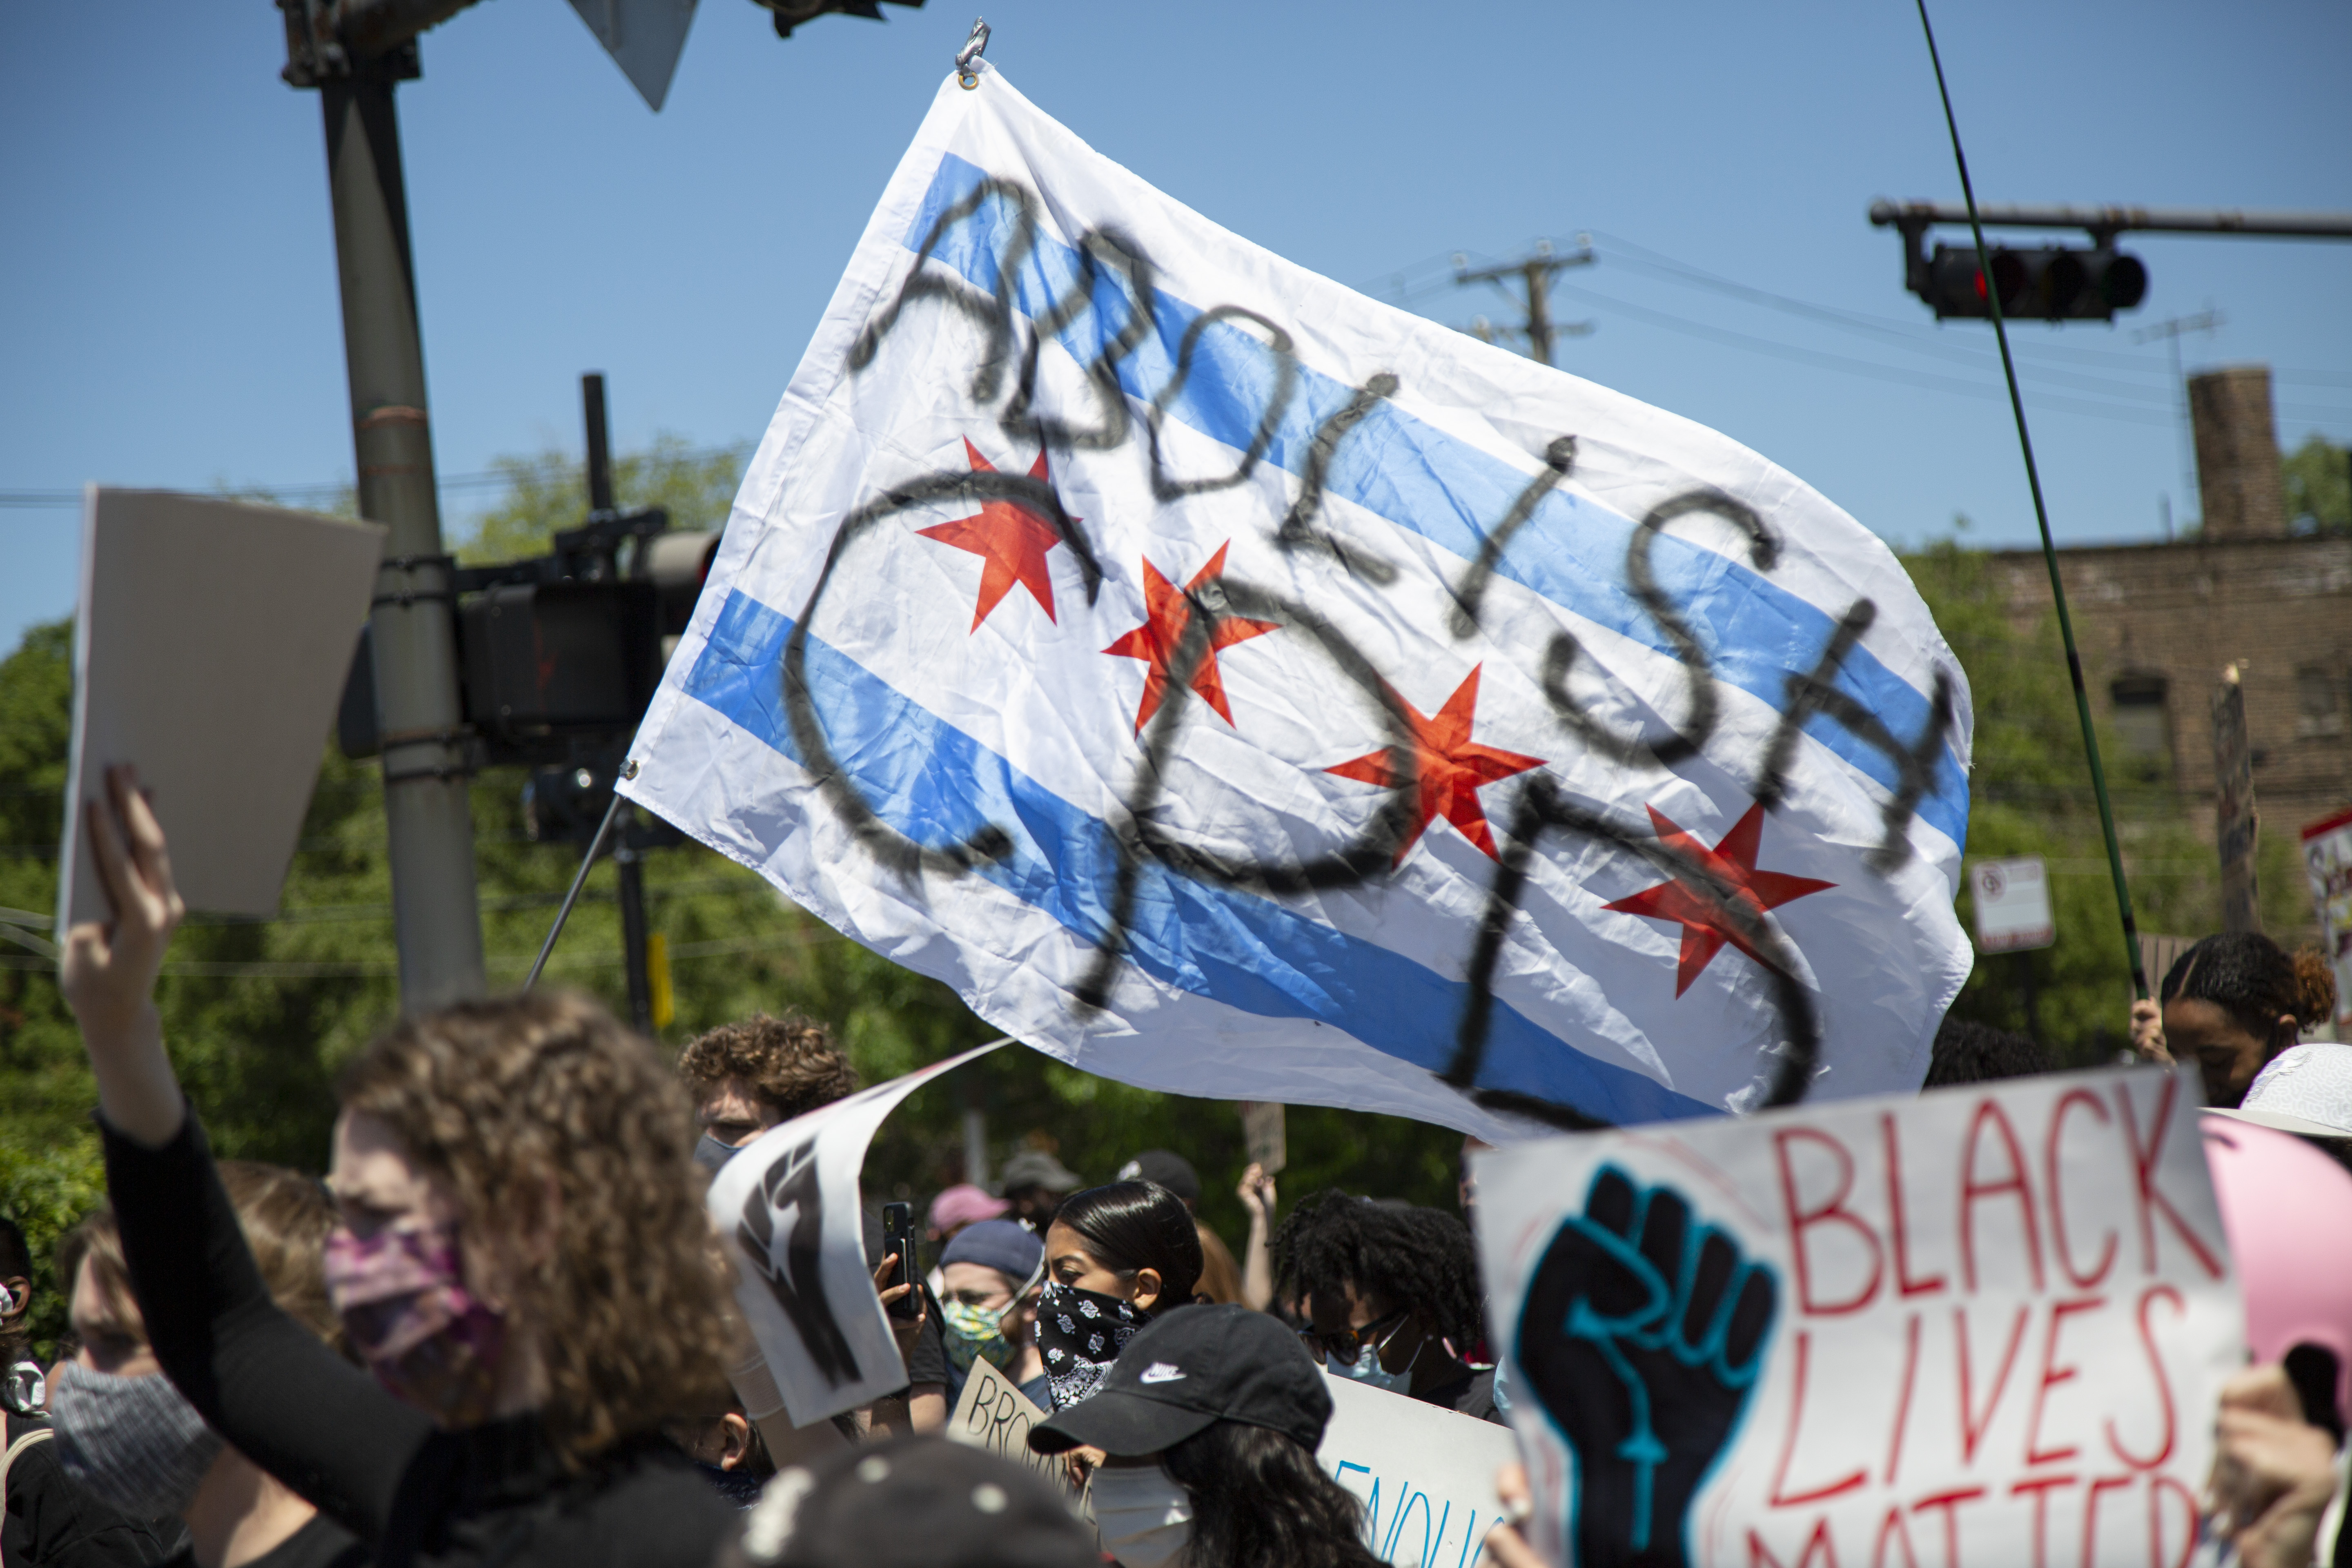 """Protesters waved an """"Abolish CPD"""" flag on East 63rd Street in Woodlawn last June."""